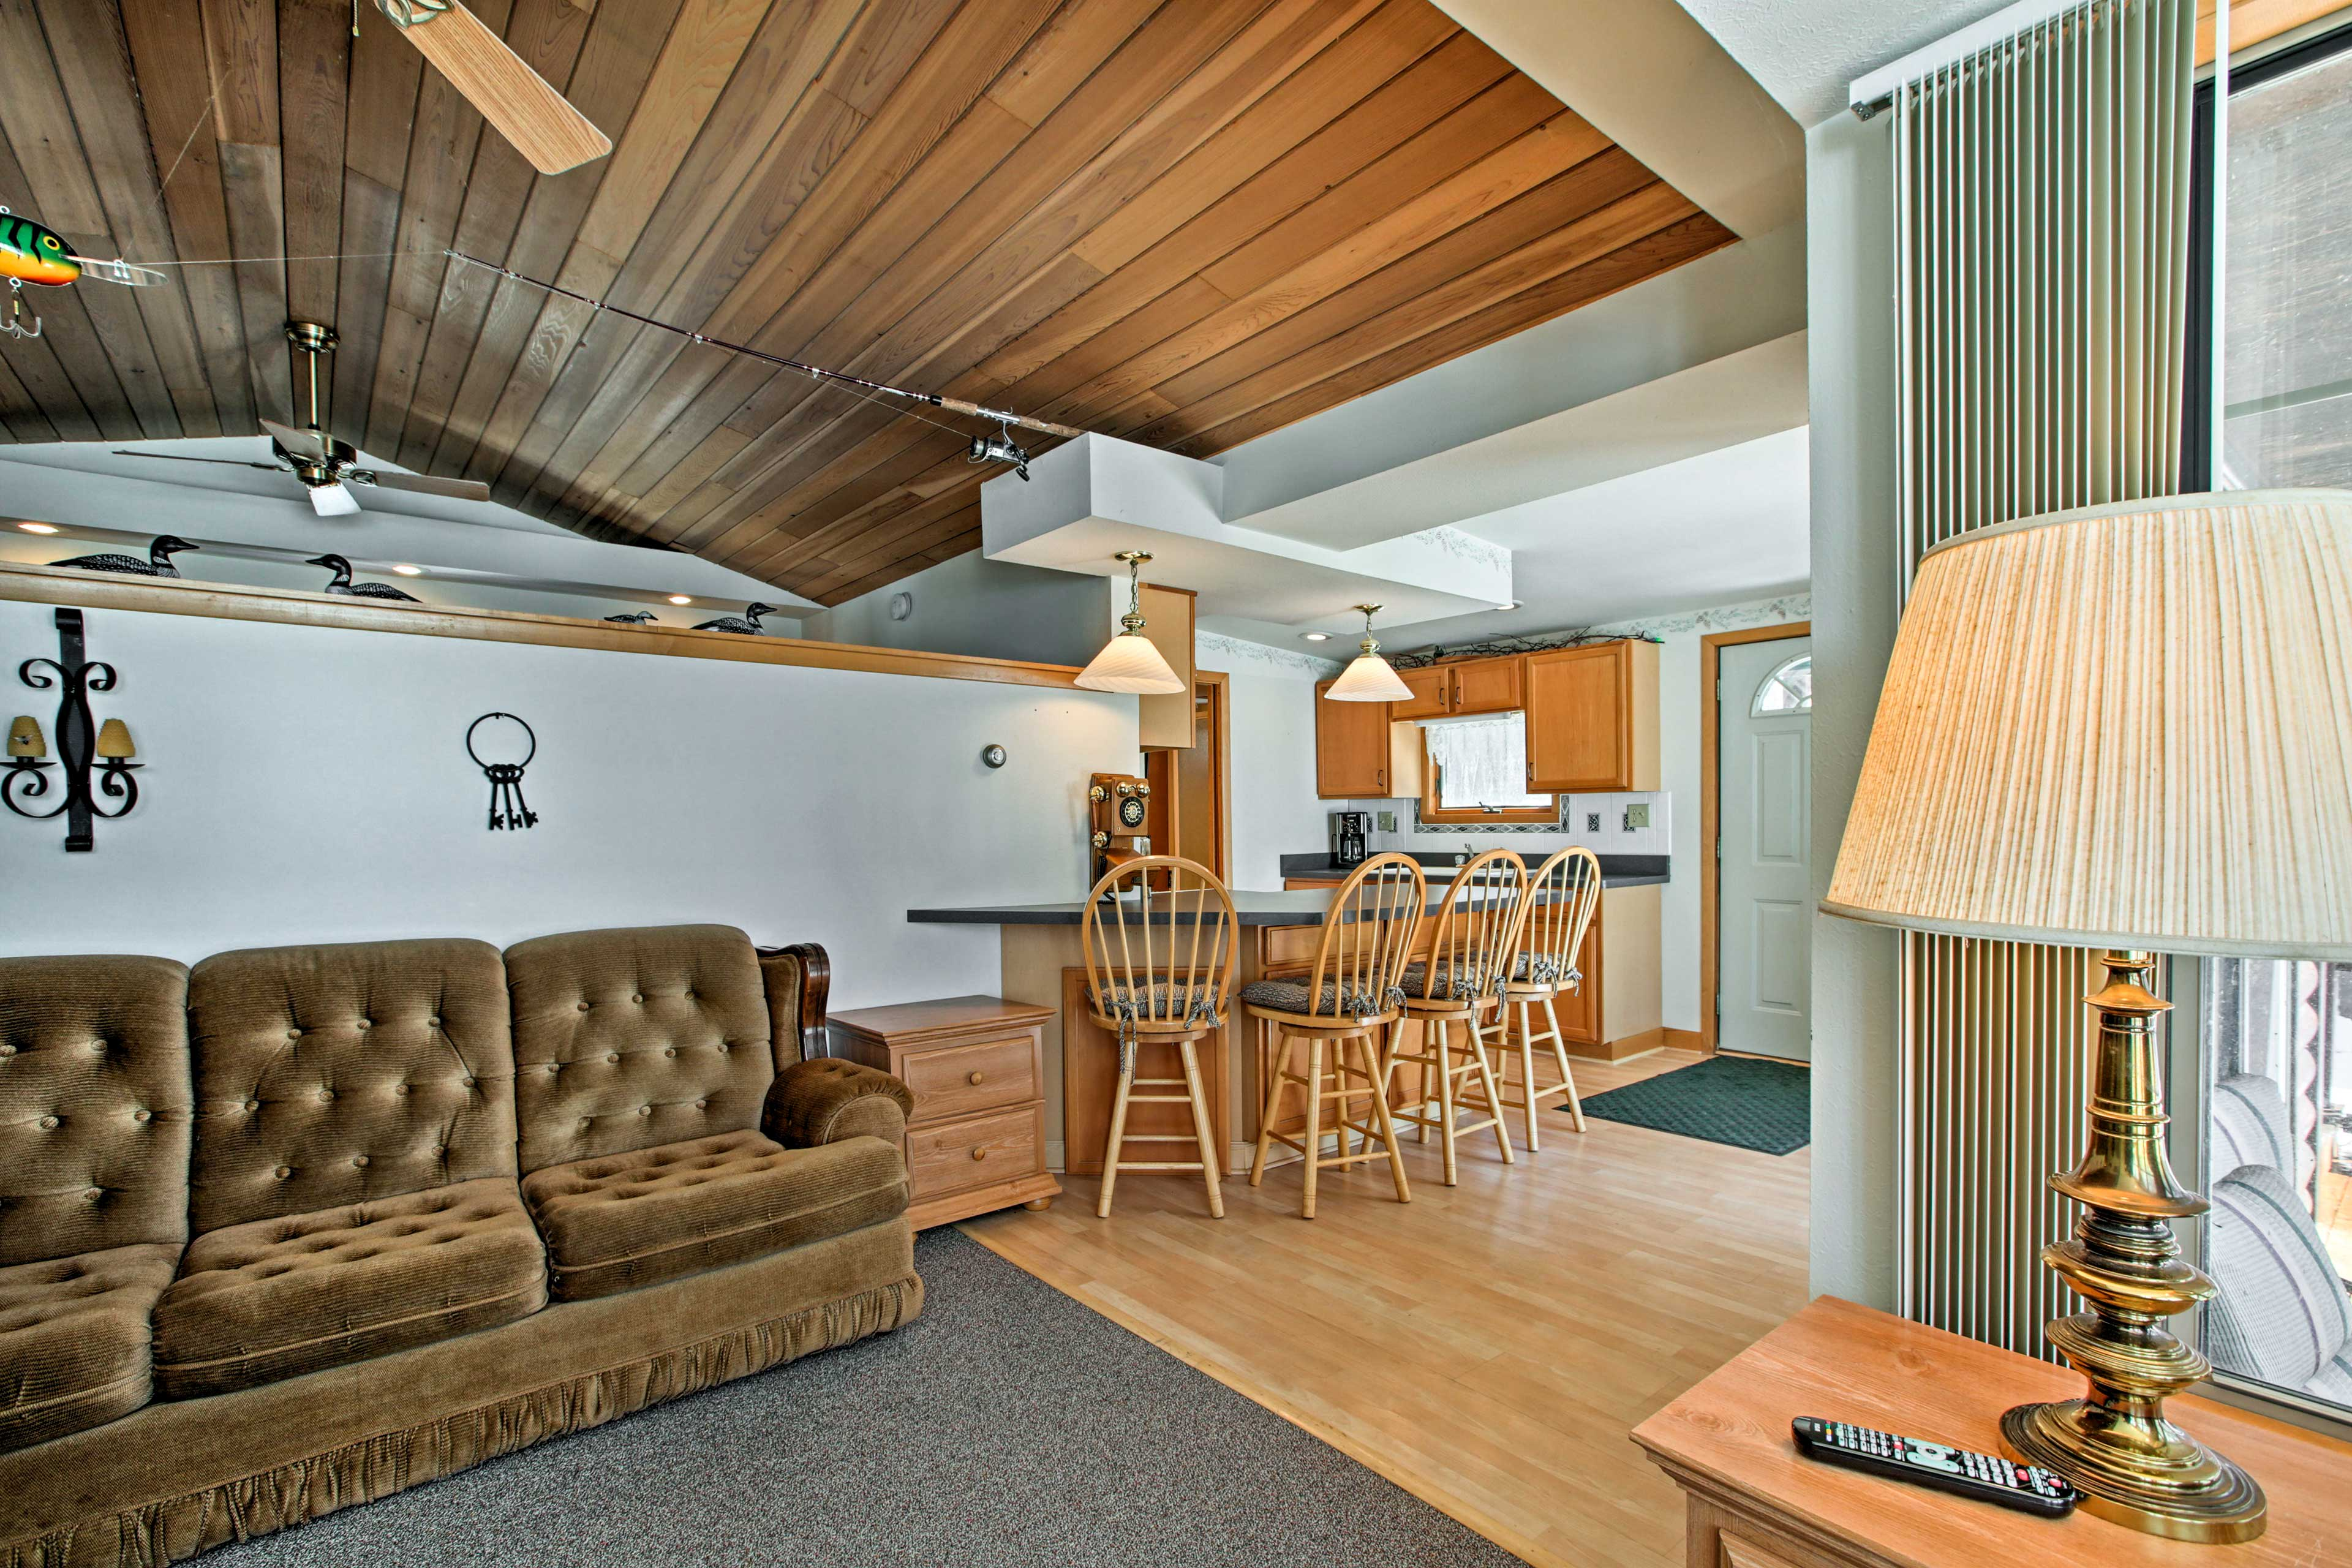 No one is ever left out of the conversation in this open-concept layout.